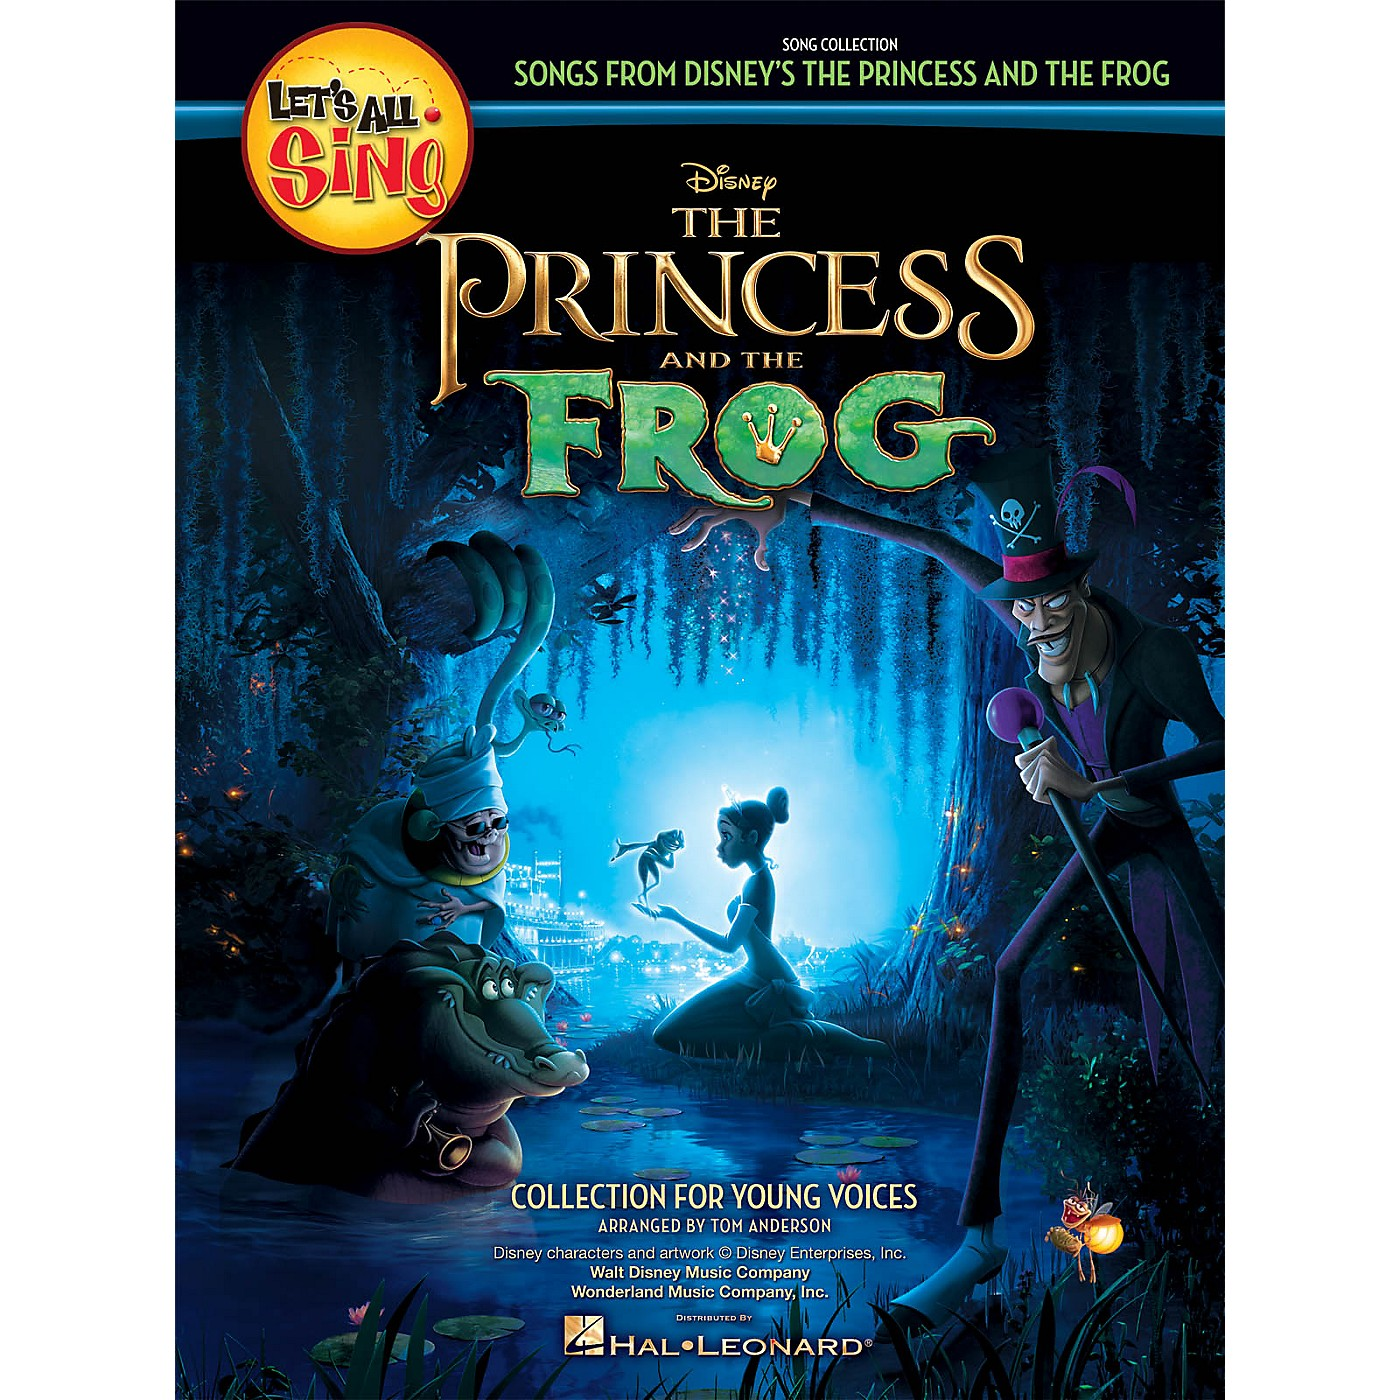 Hal Leonard Let's All Sing Songs from Disney's The Princess and the Frog Performance/Accompaniment CD by Tom Anderson thumbnail